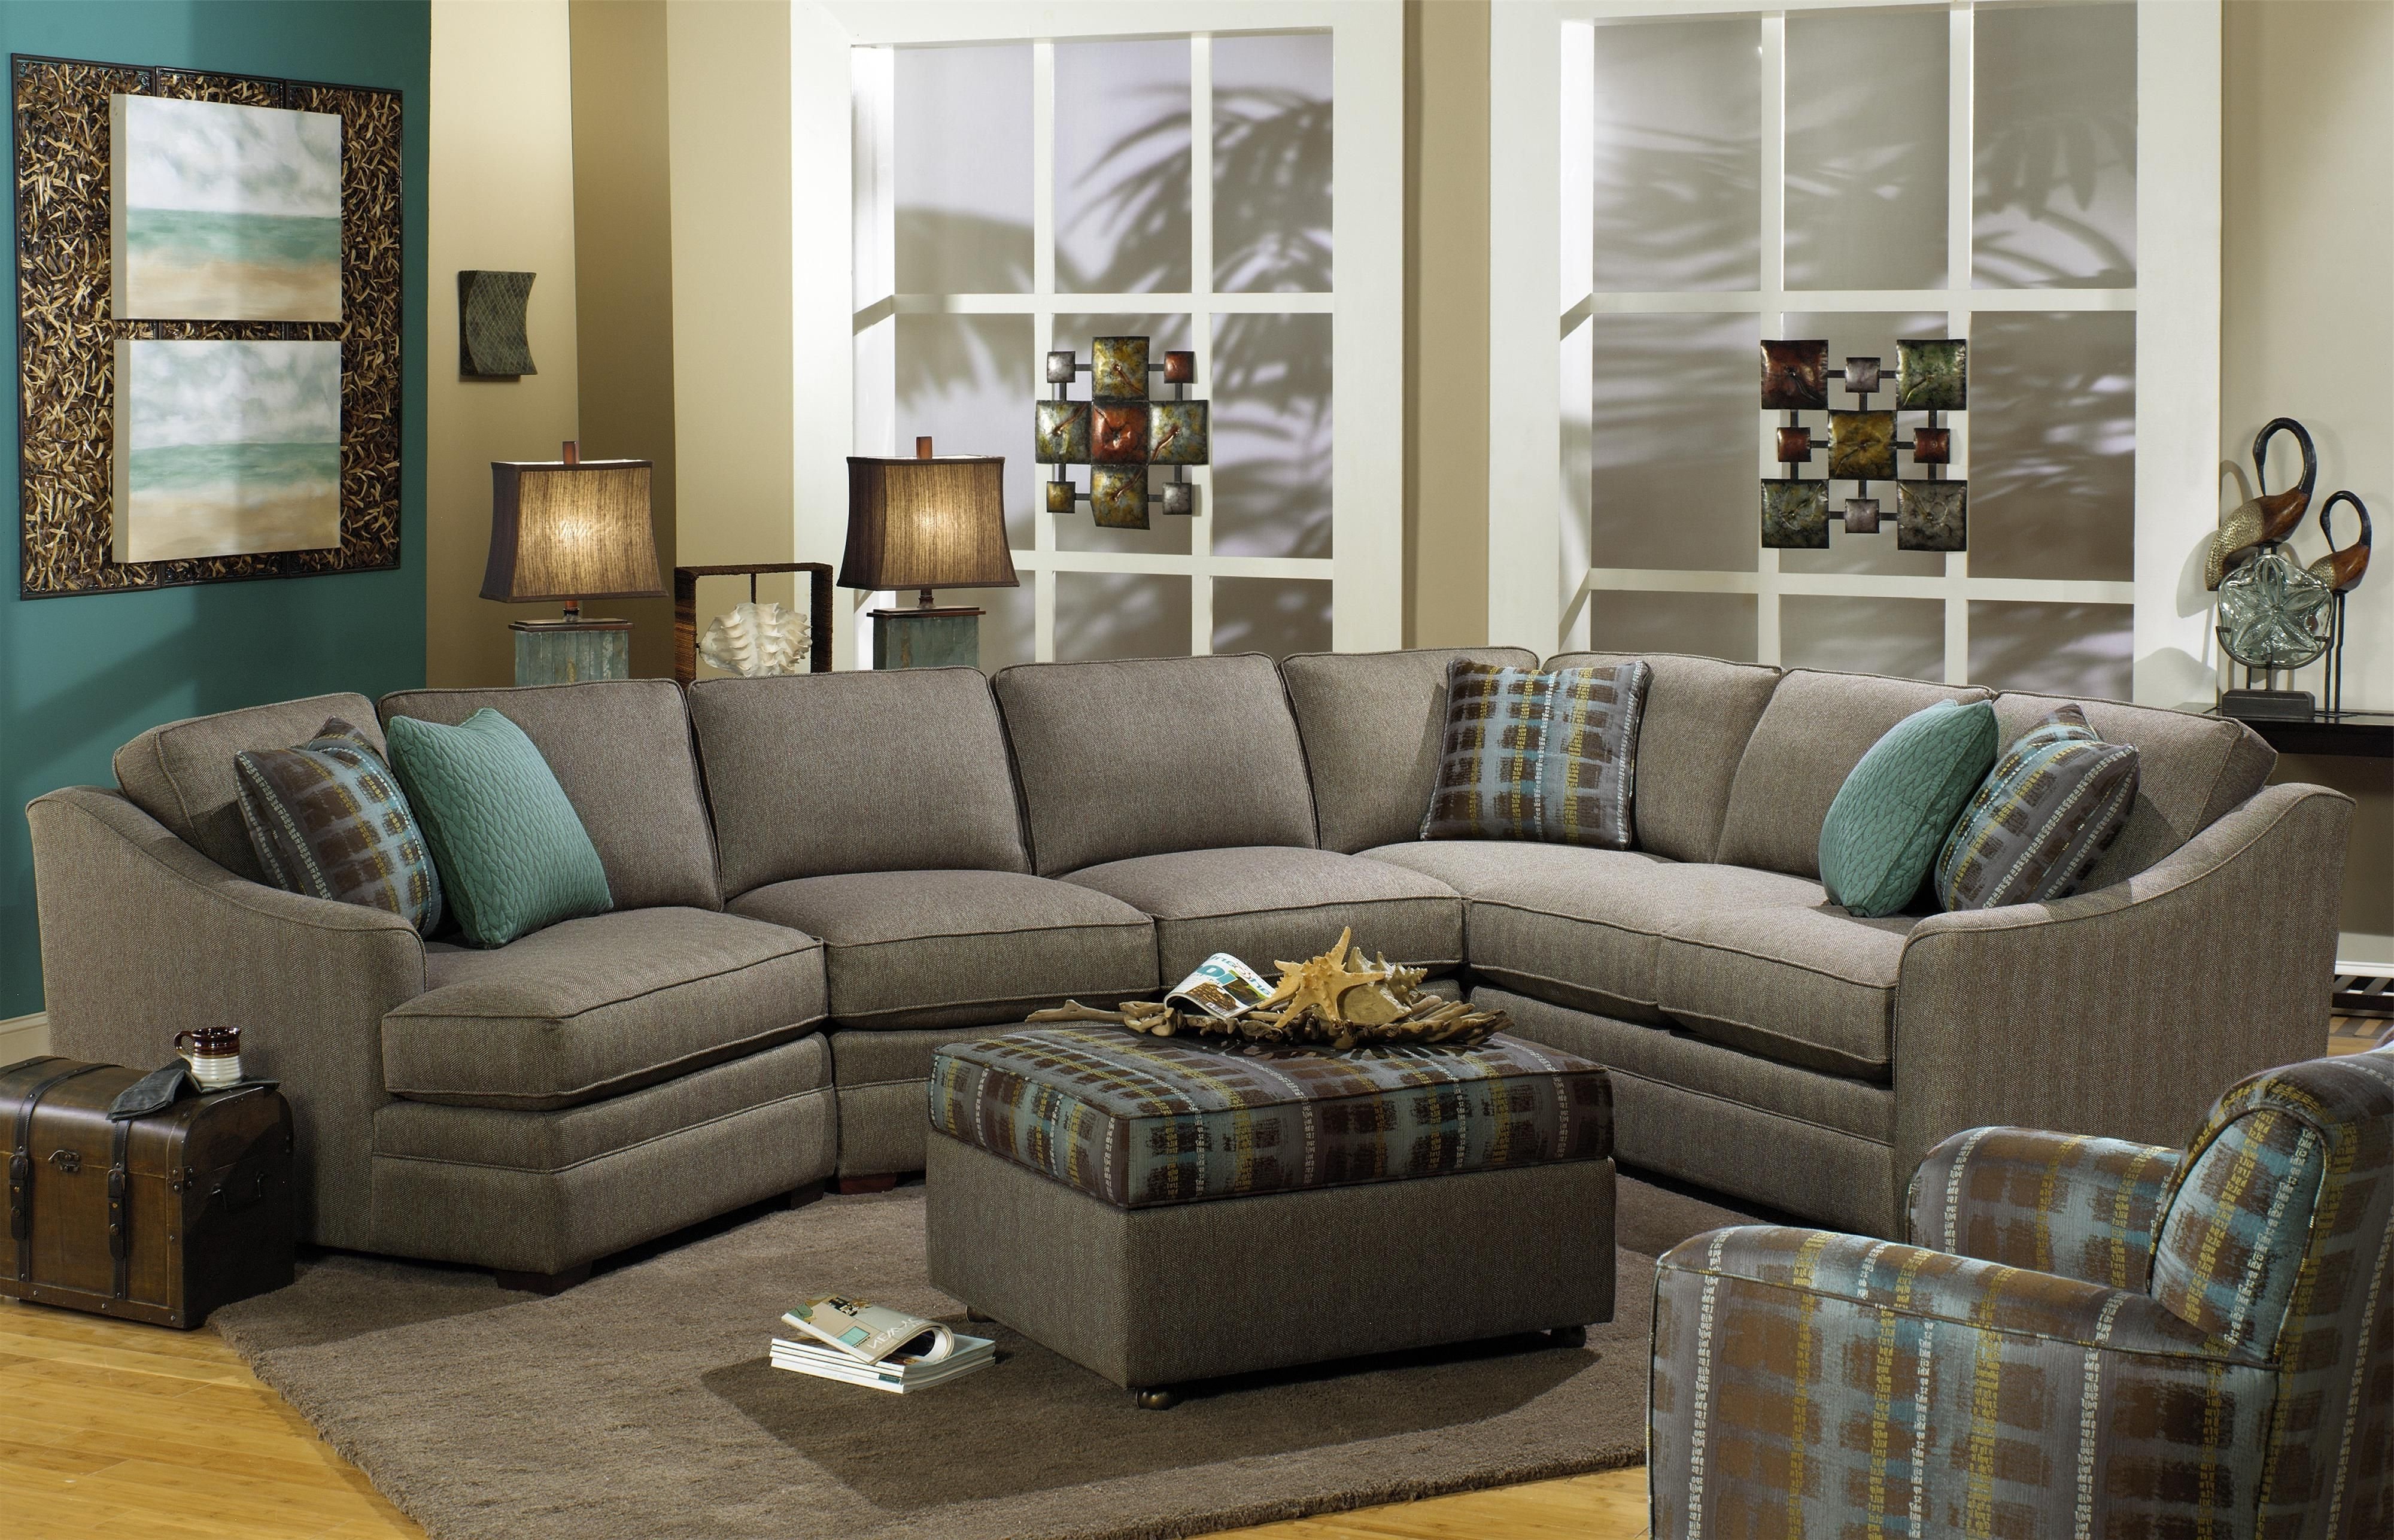 F9 Custom Collection Customizable 3 Piece Sectional With Laf Within Best And Newest Killeen Tx Sectional Sofas (View 6 of 20)